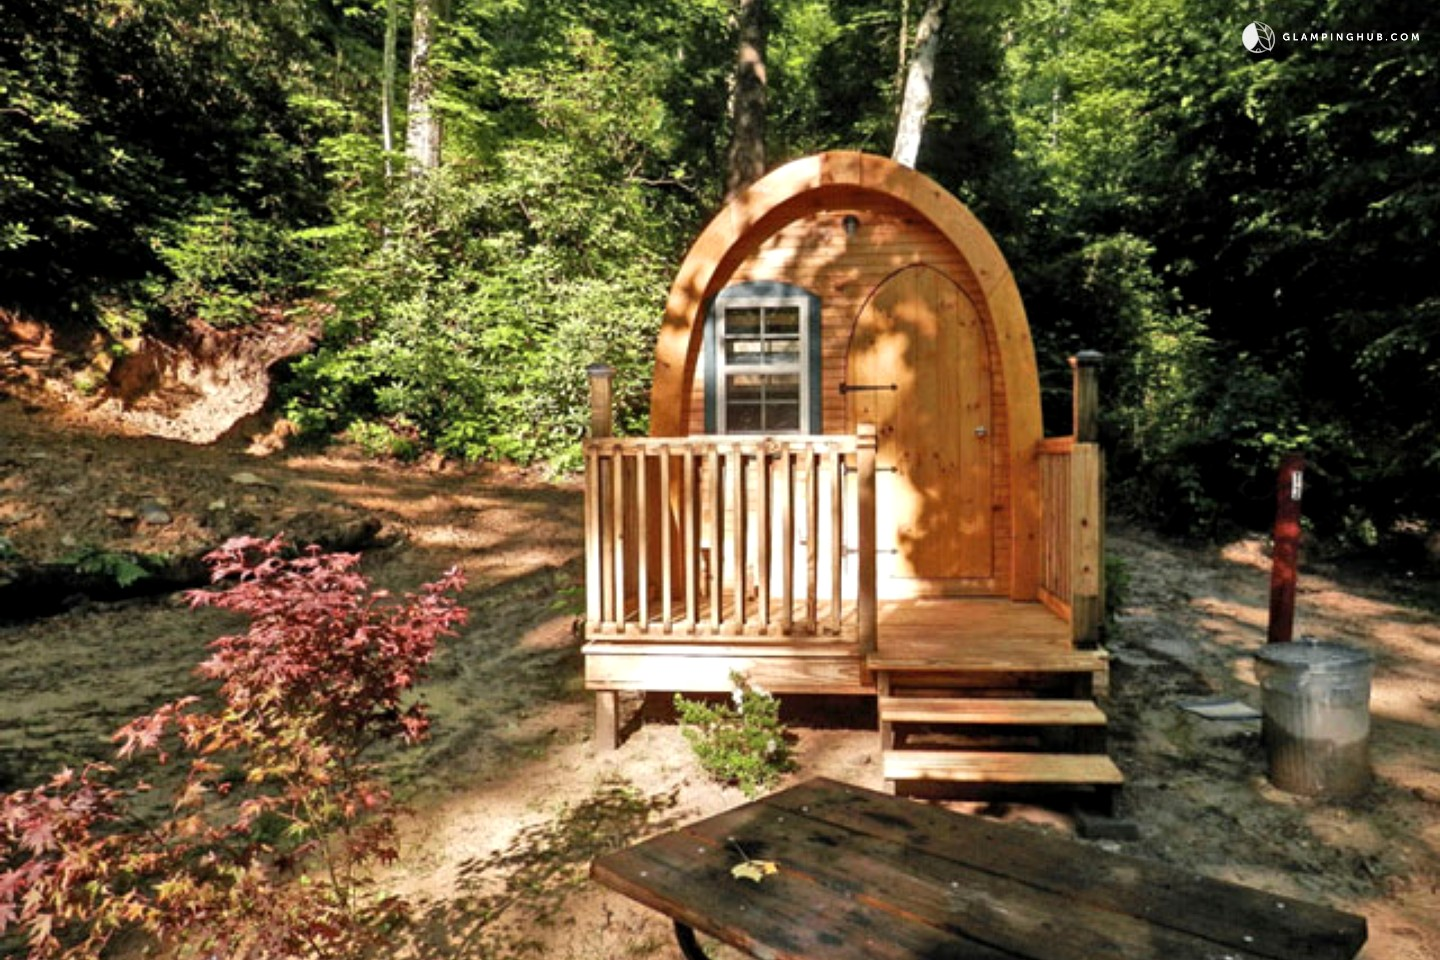 Luxury Cabin Rentals In North Carolina Glamping In North